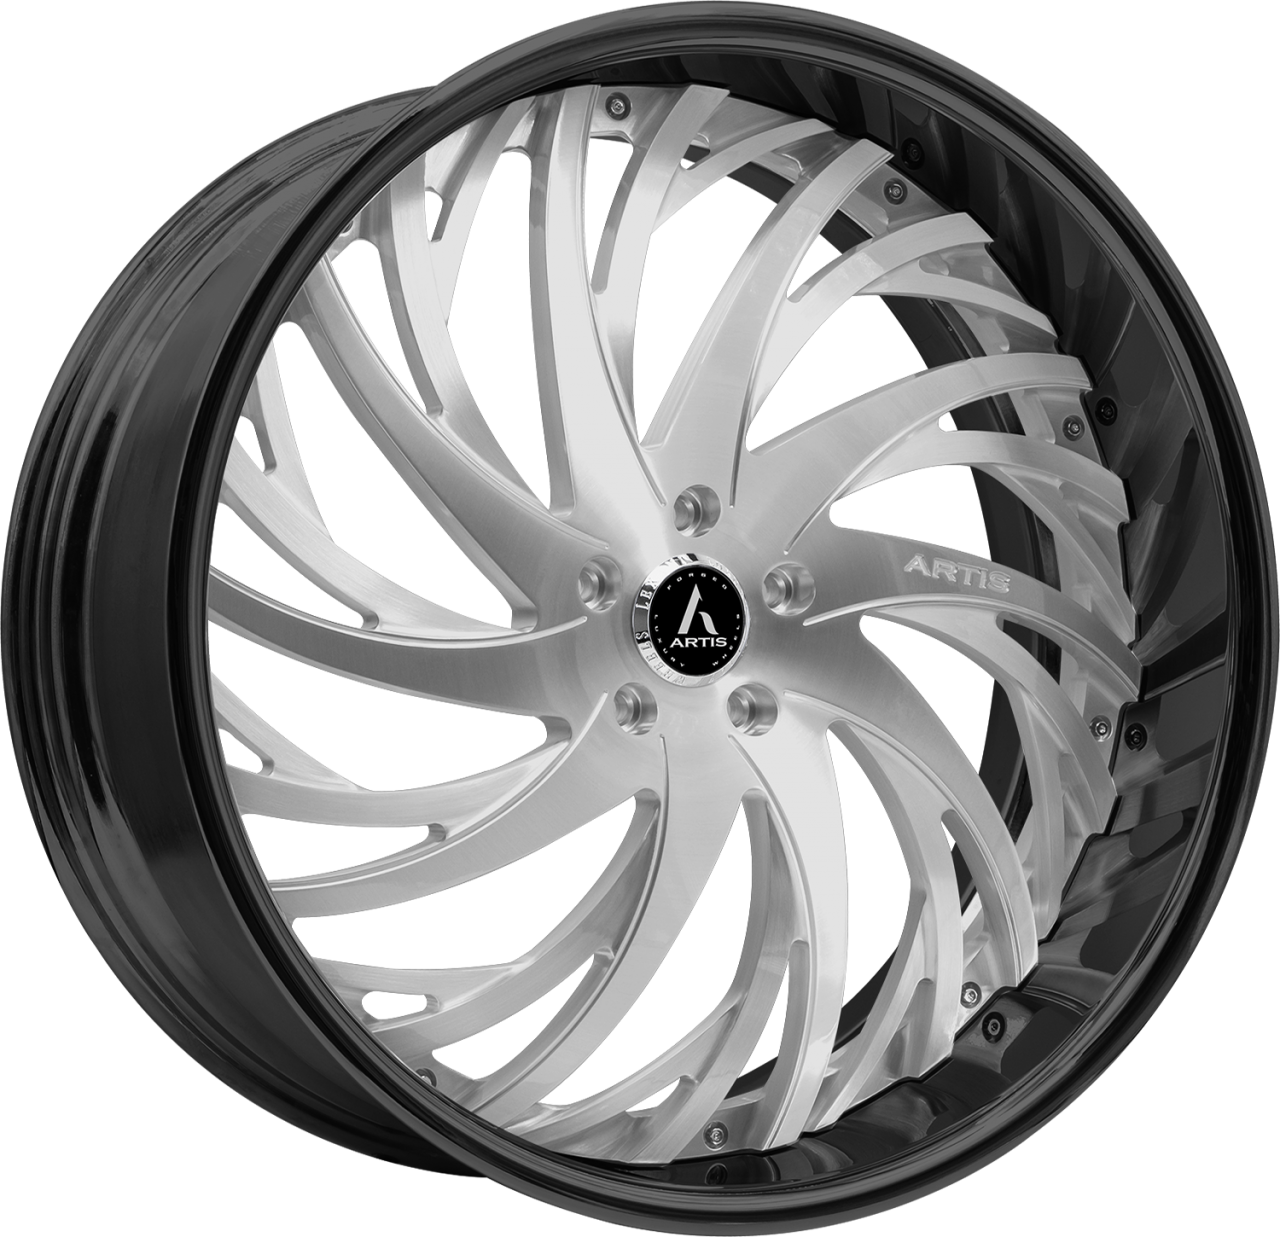 Artis Forged Decatur wheel with Brushed and Black finish